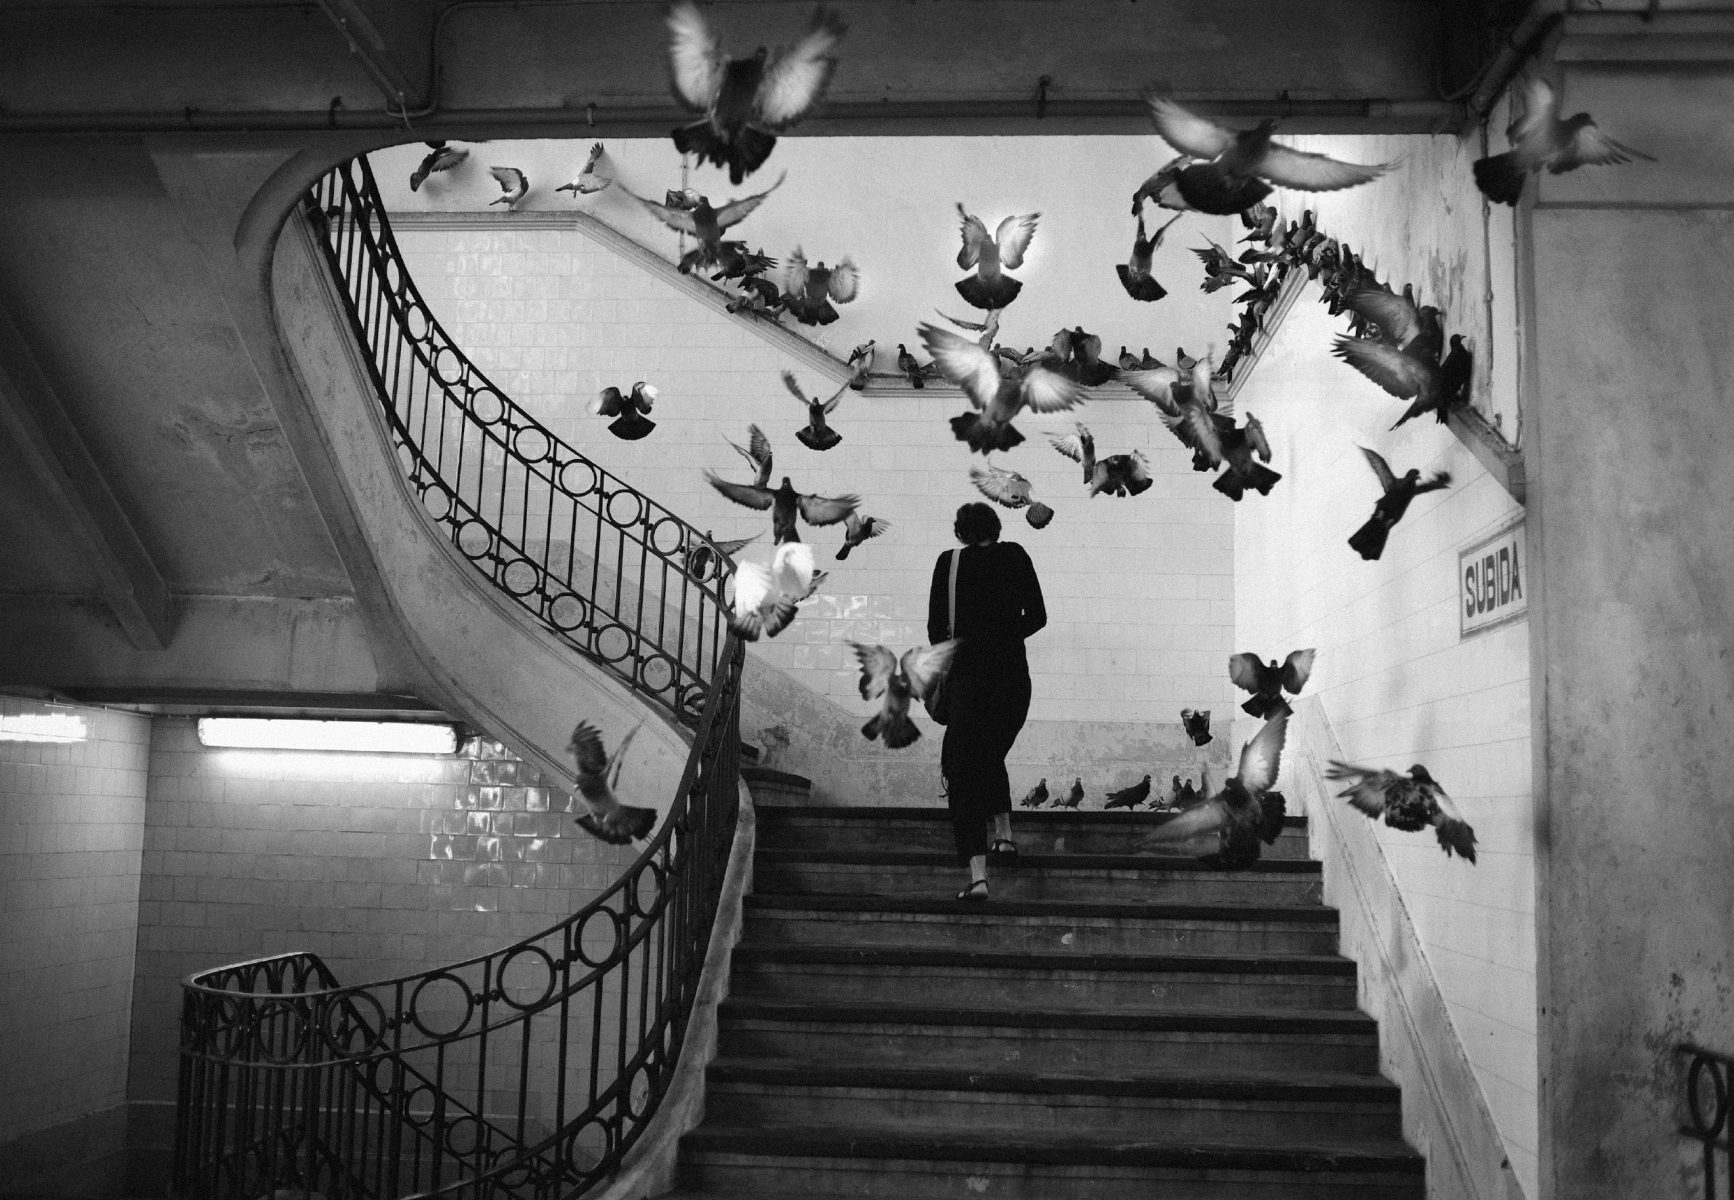 black and white street photograph of woman and pigeons by Rui Palha